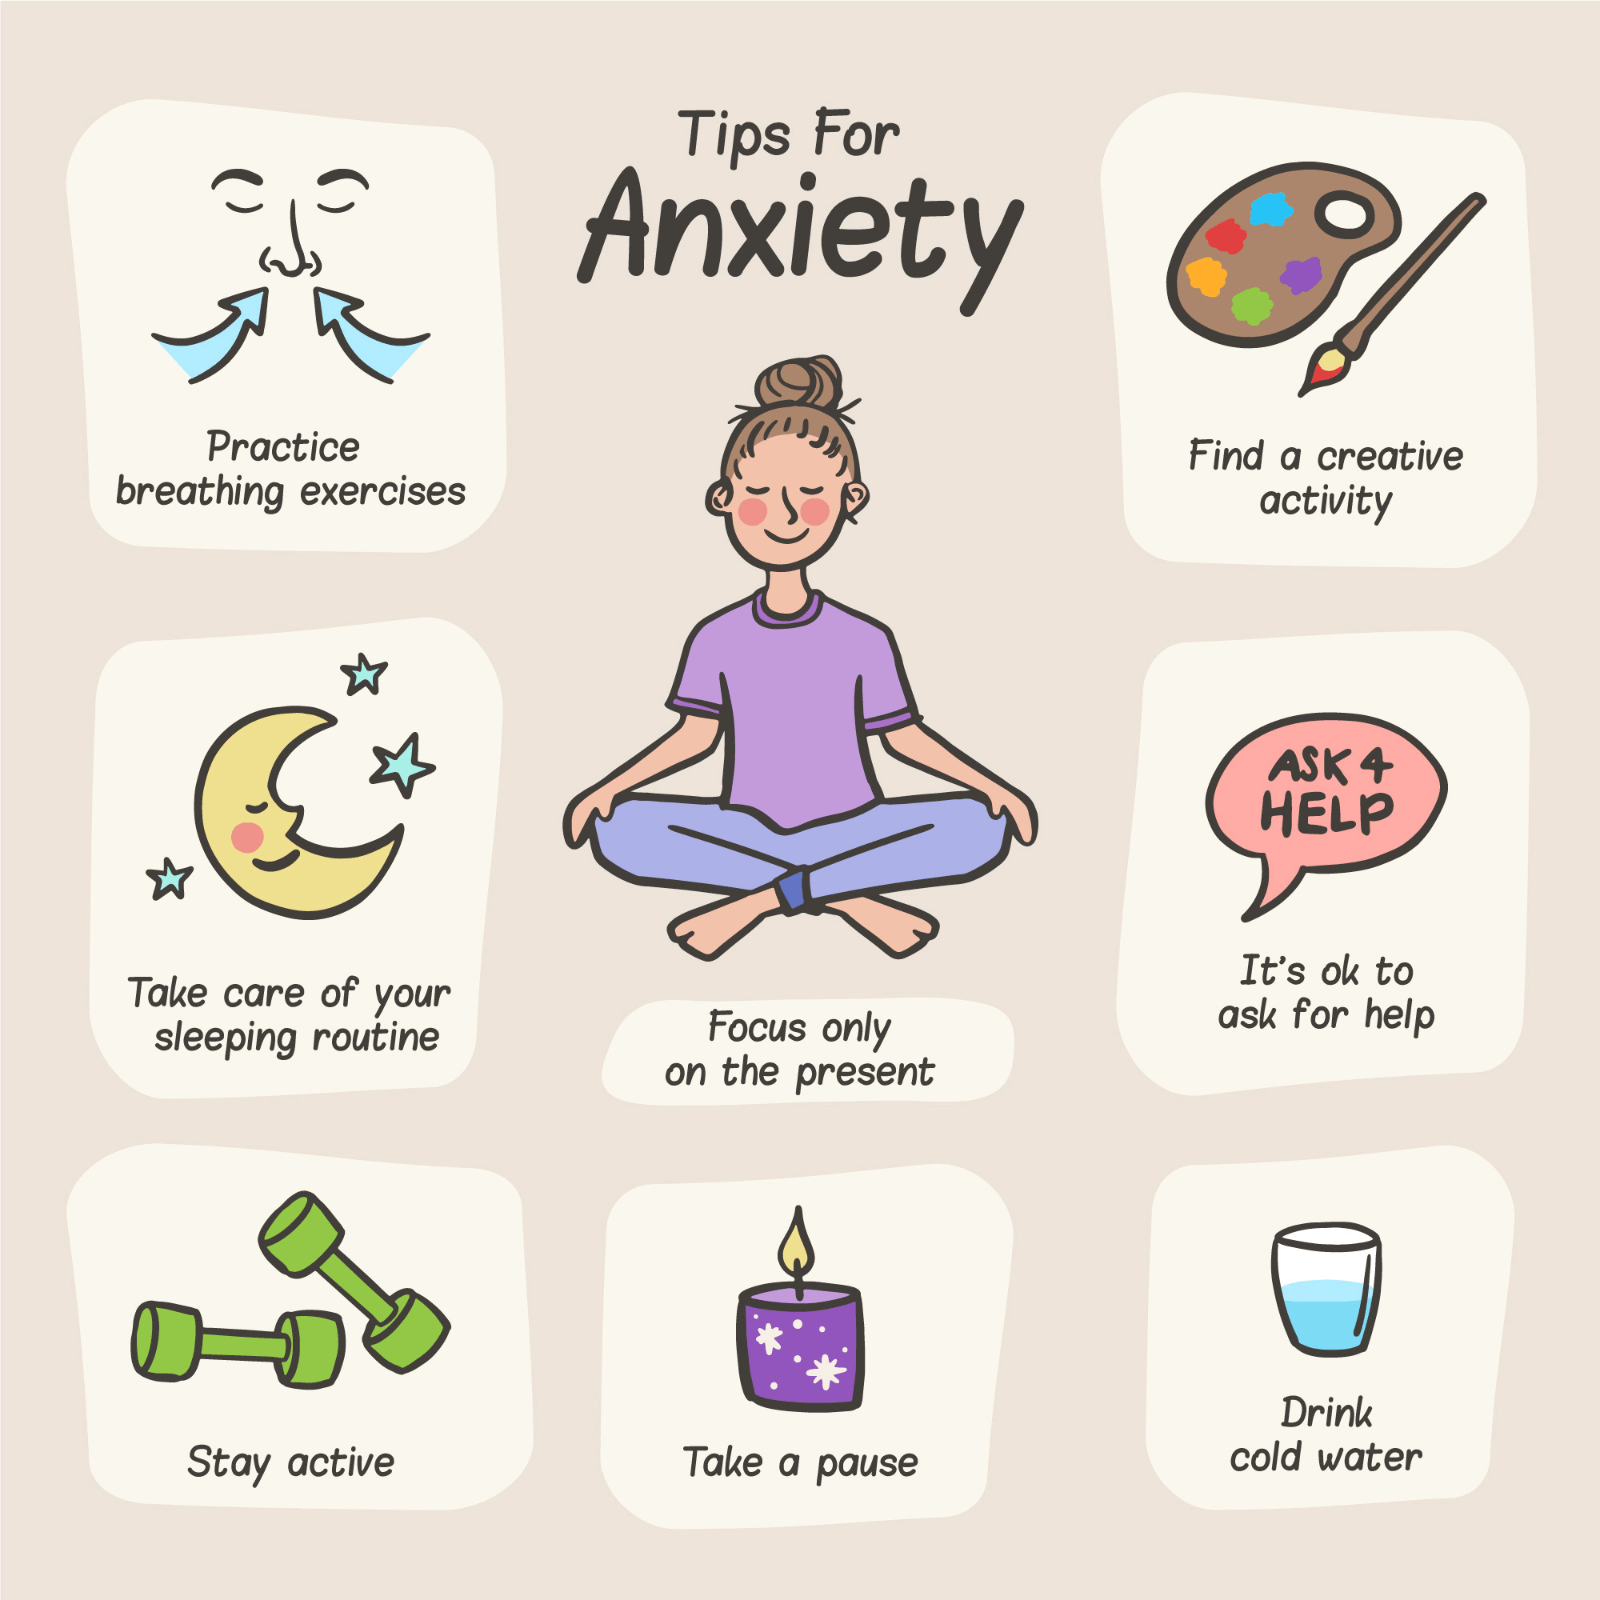 Here's How to Manage Anxiety